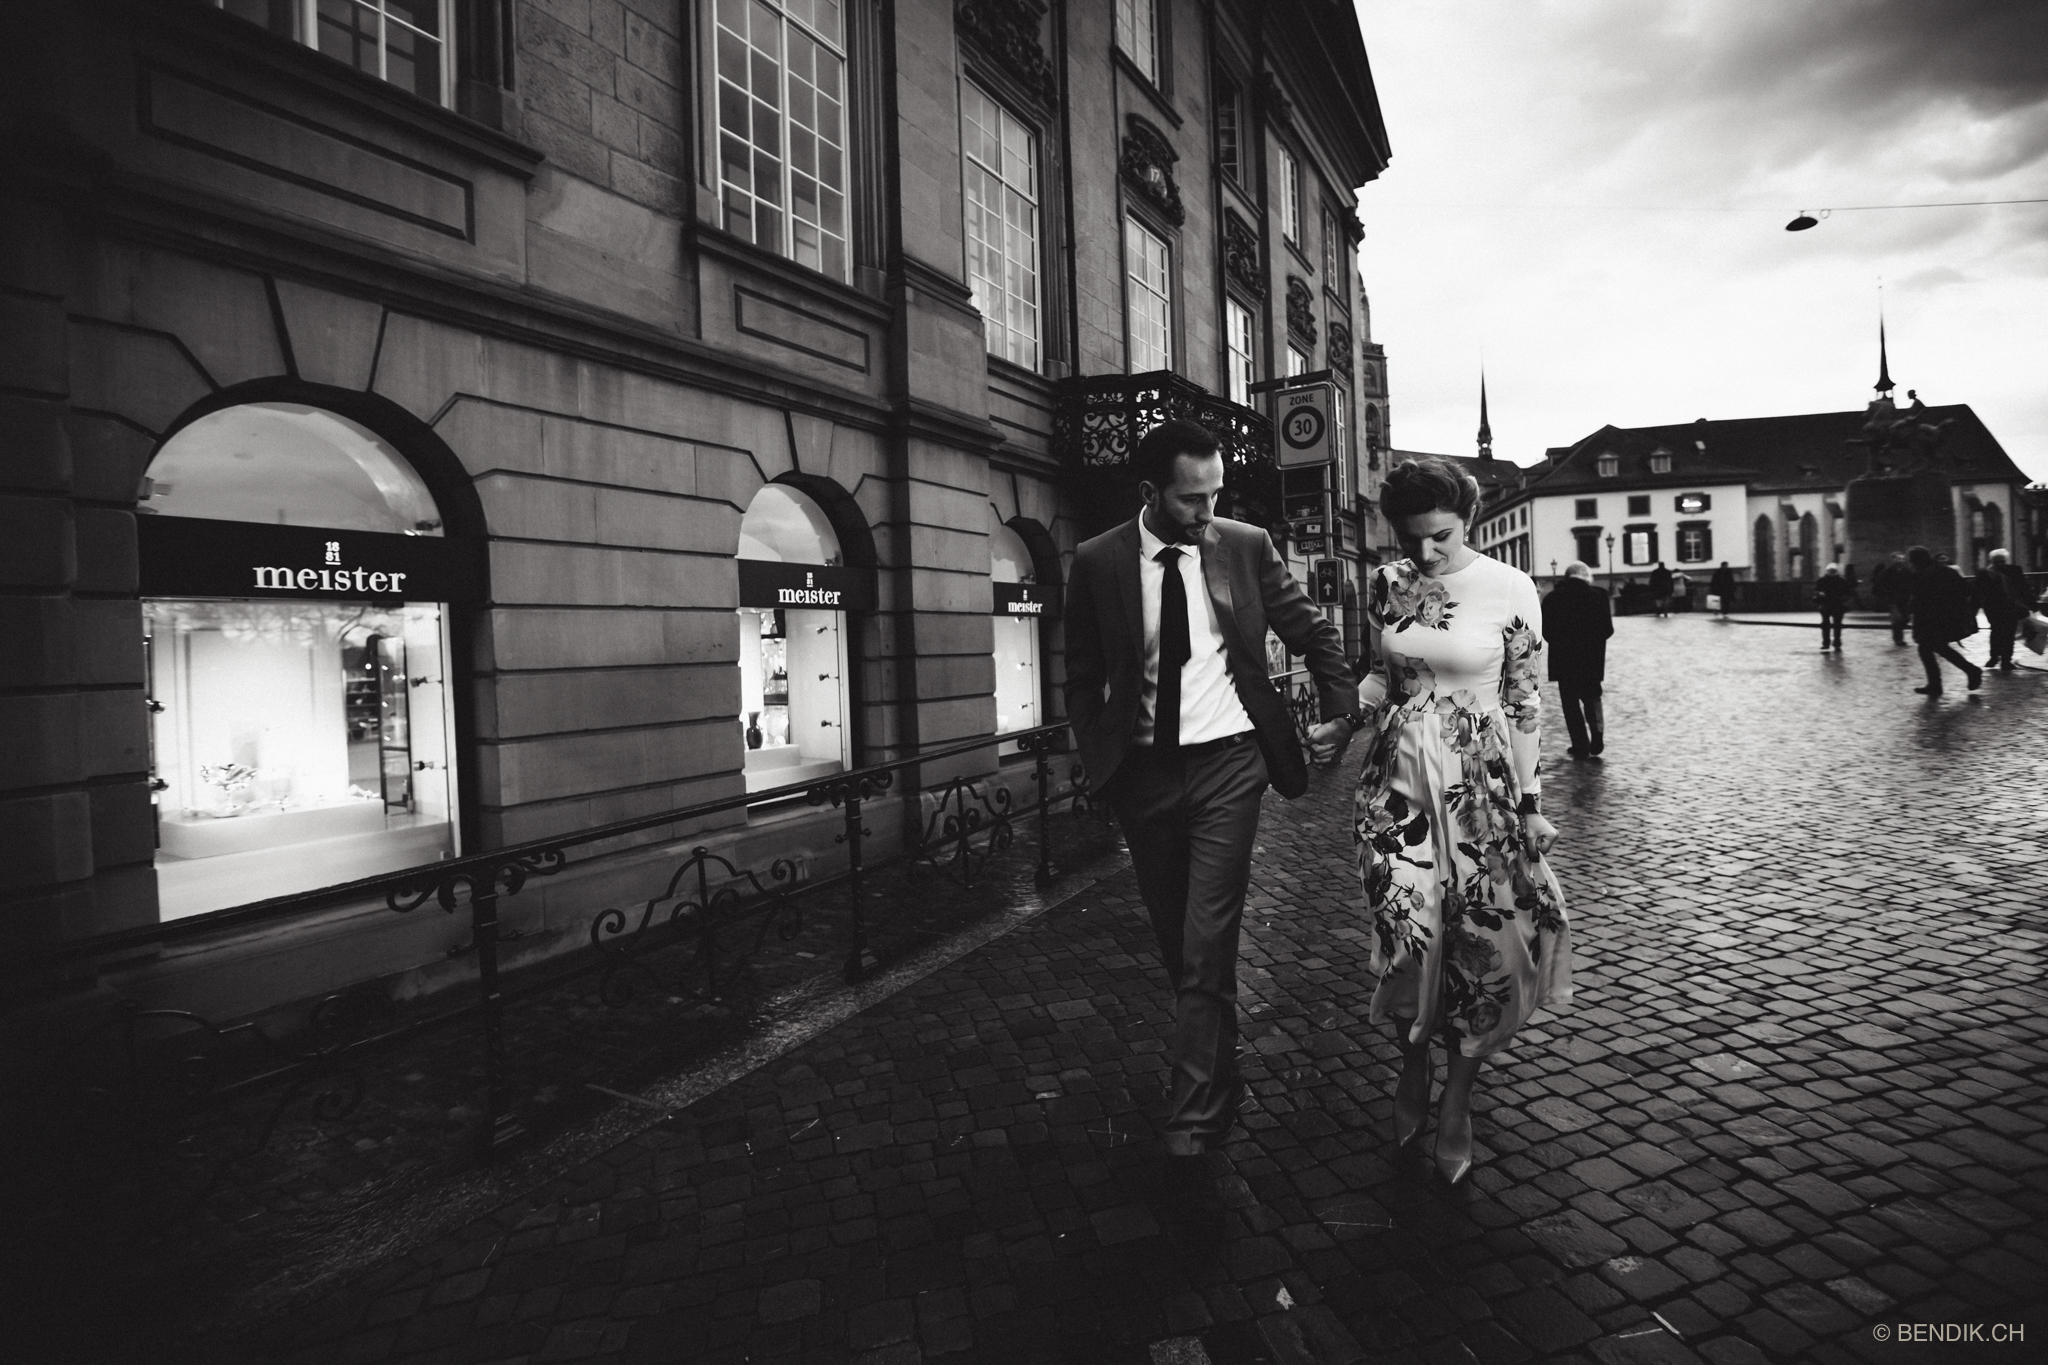 s_wedding_photoshoot_zurich_s_a_20161118_105